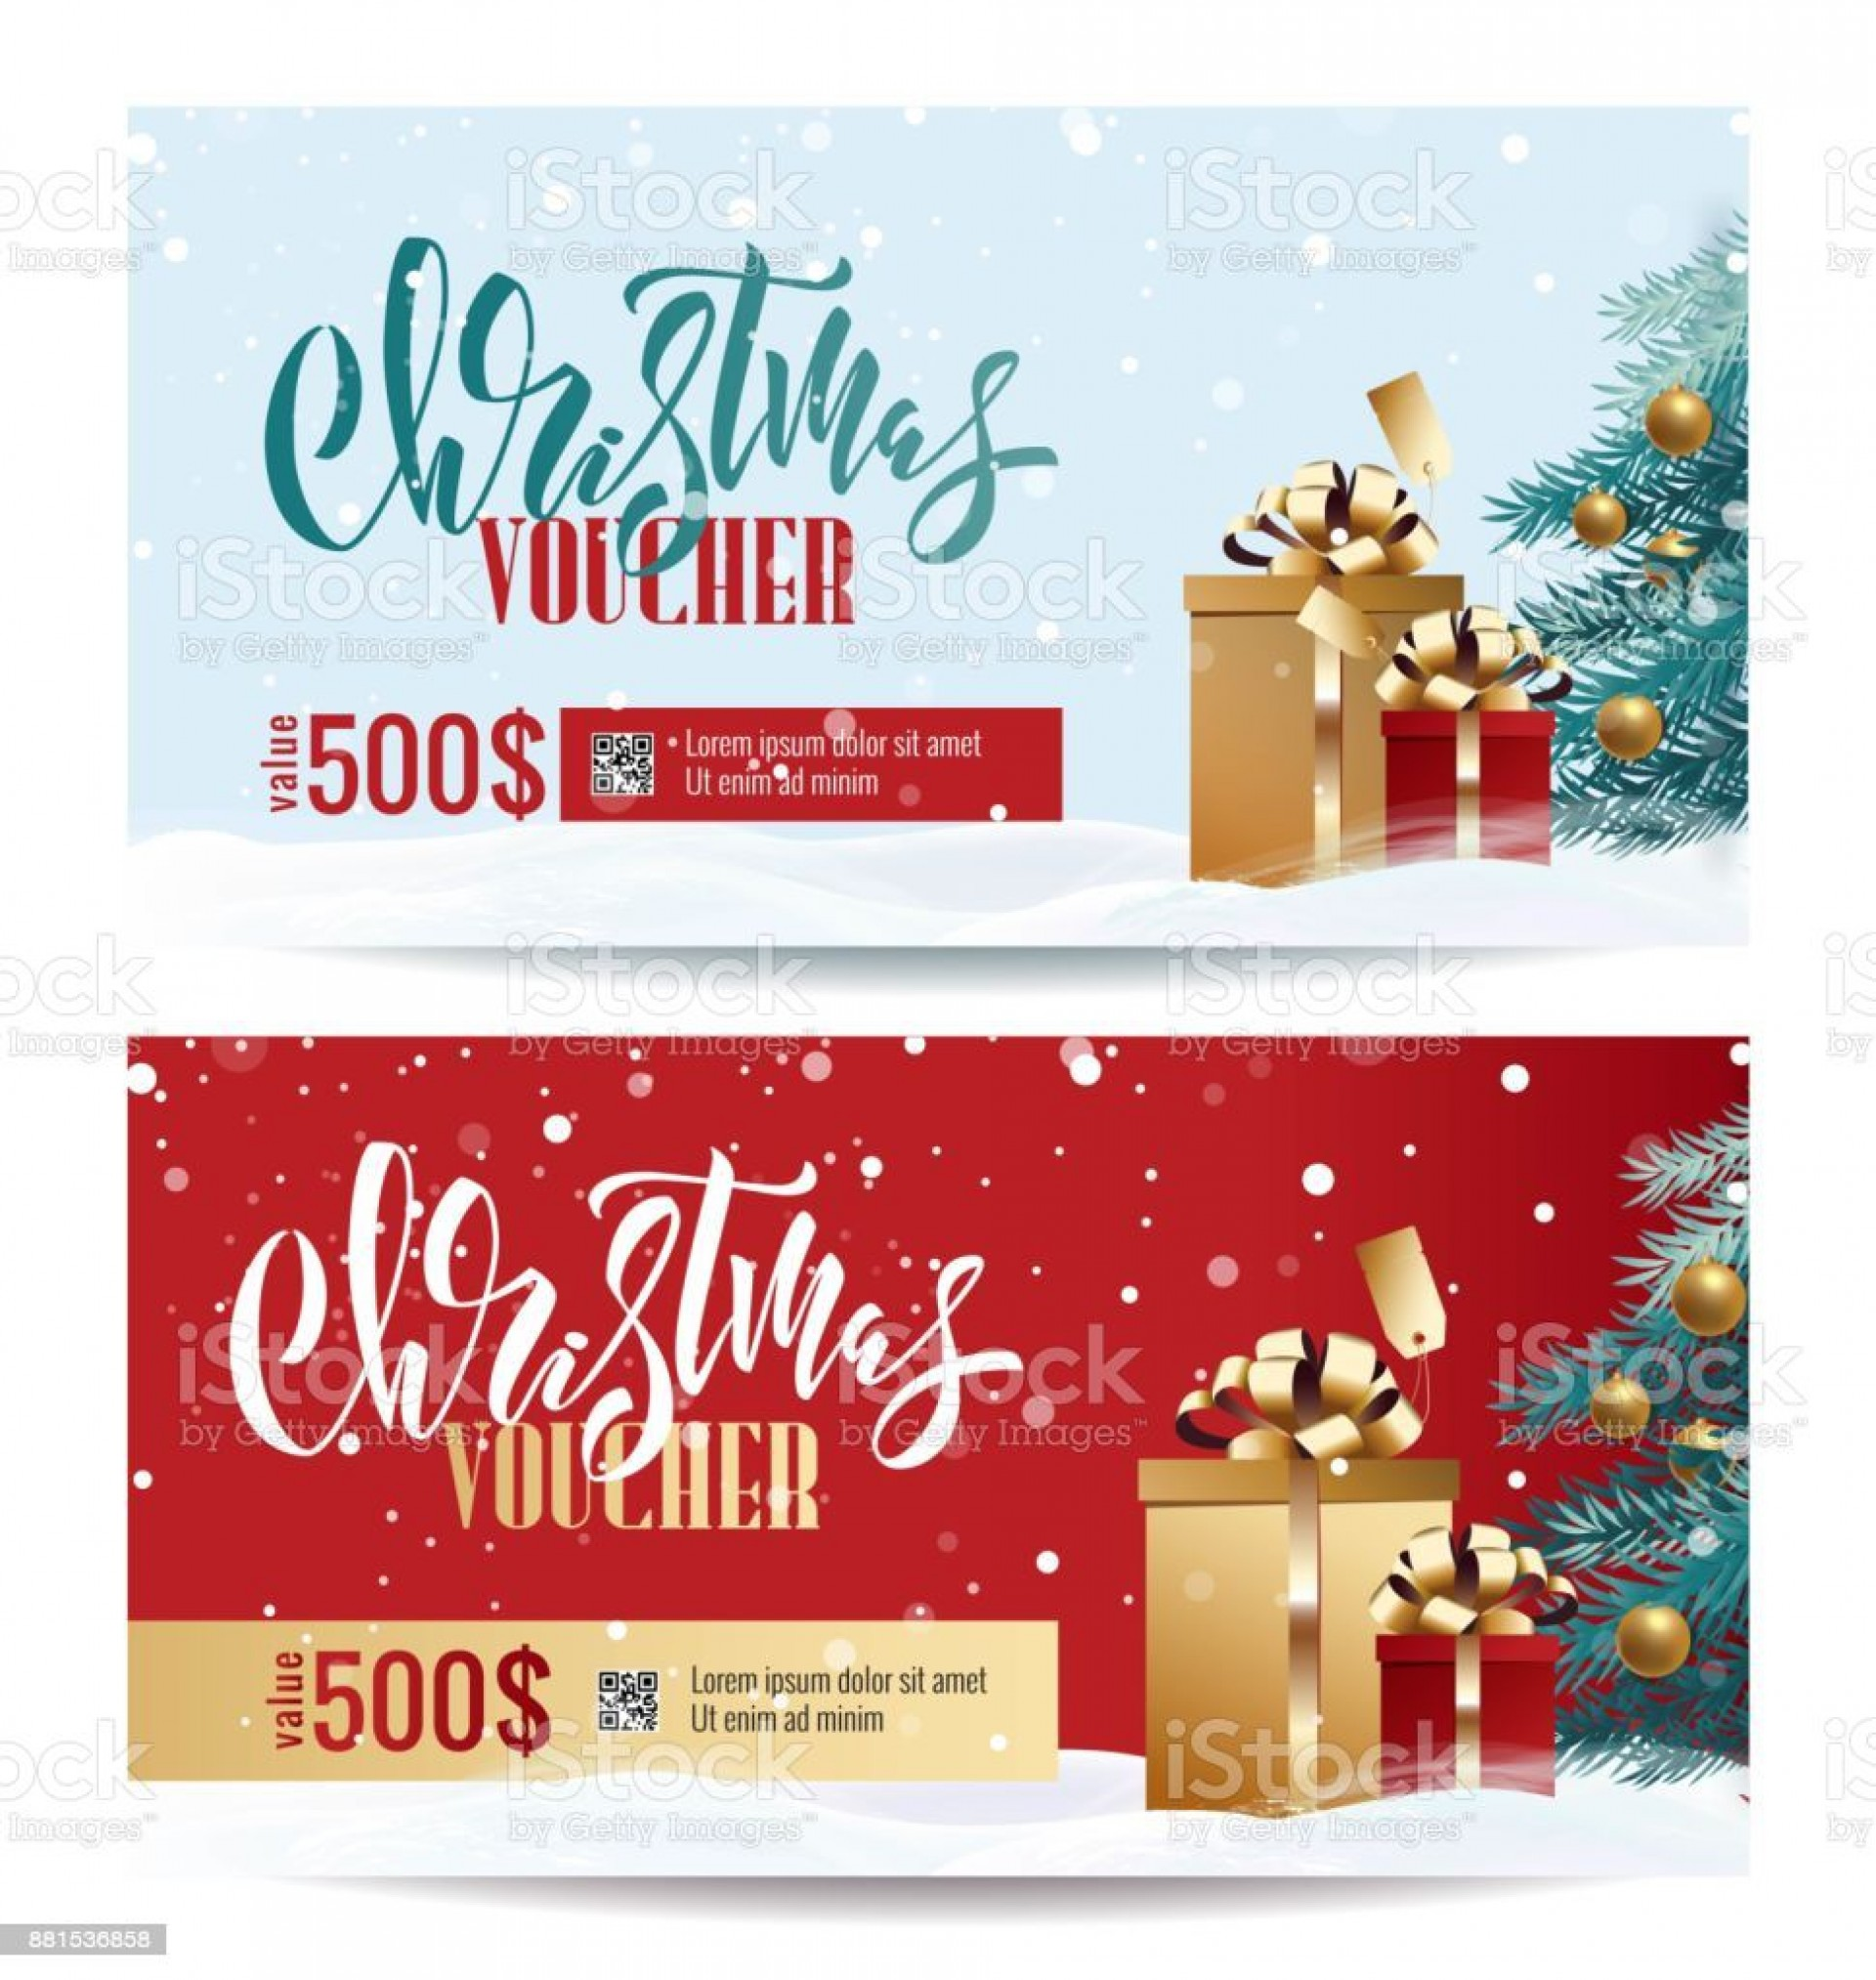 008 Incredible Template For Christma Gift Certificate Free Image  Voucher Uk Editable Download Microsoft Word1920